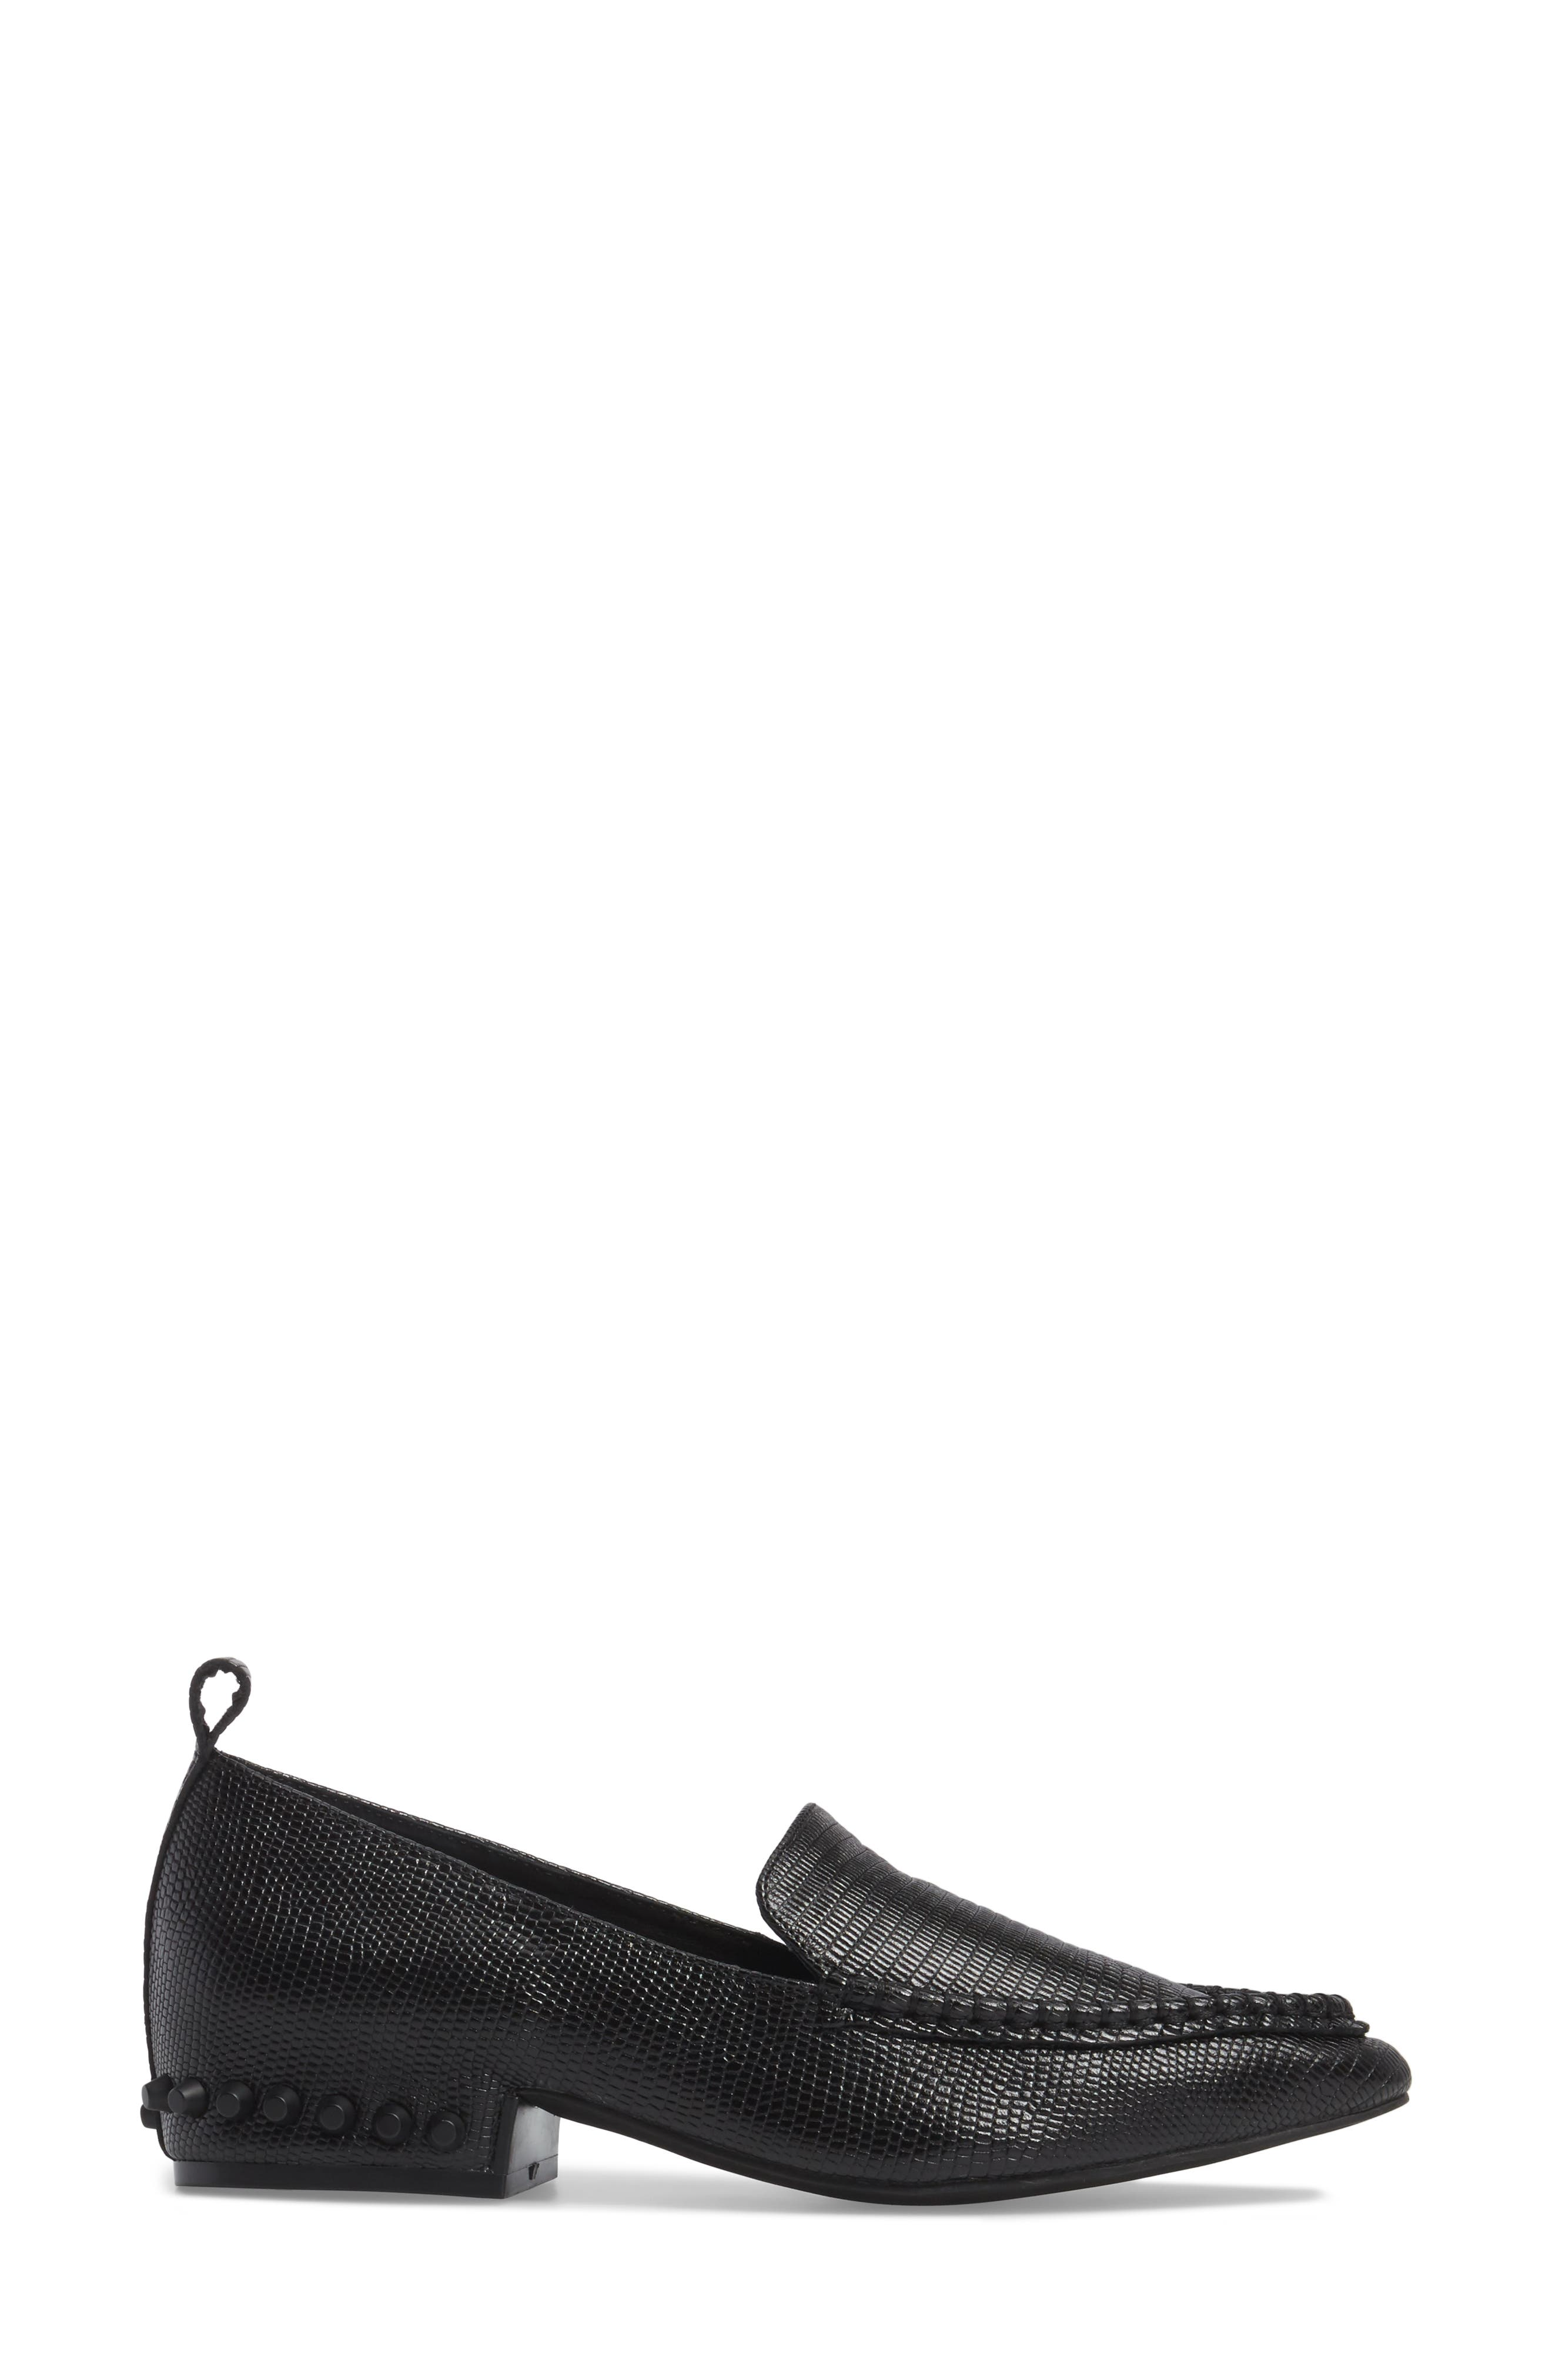 Barnett Studded Loafer,                             Alternate thumbnail 3, color,                             002